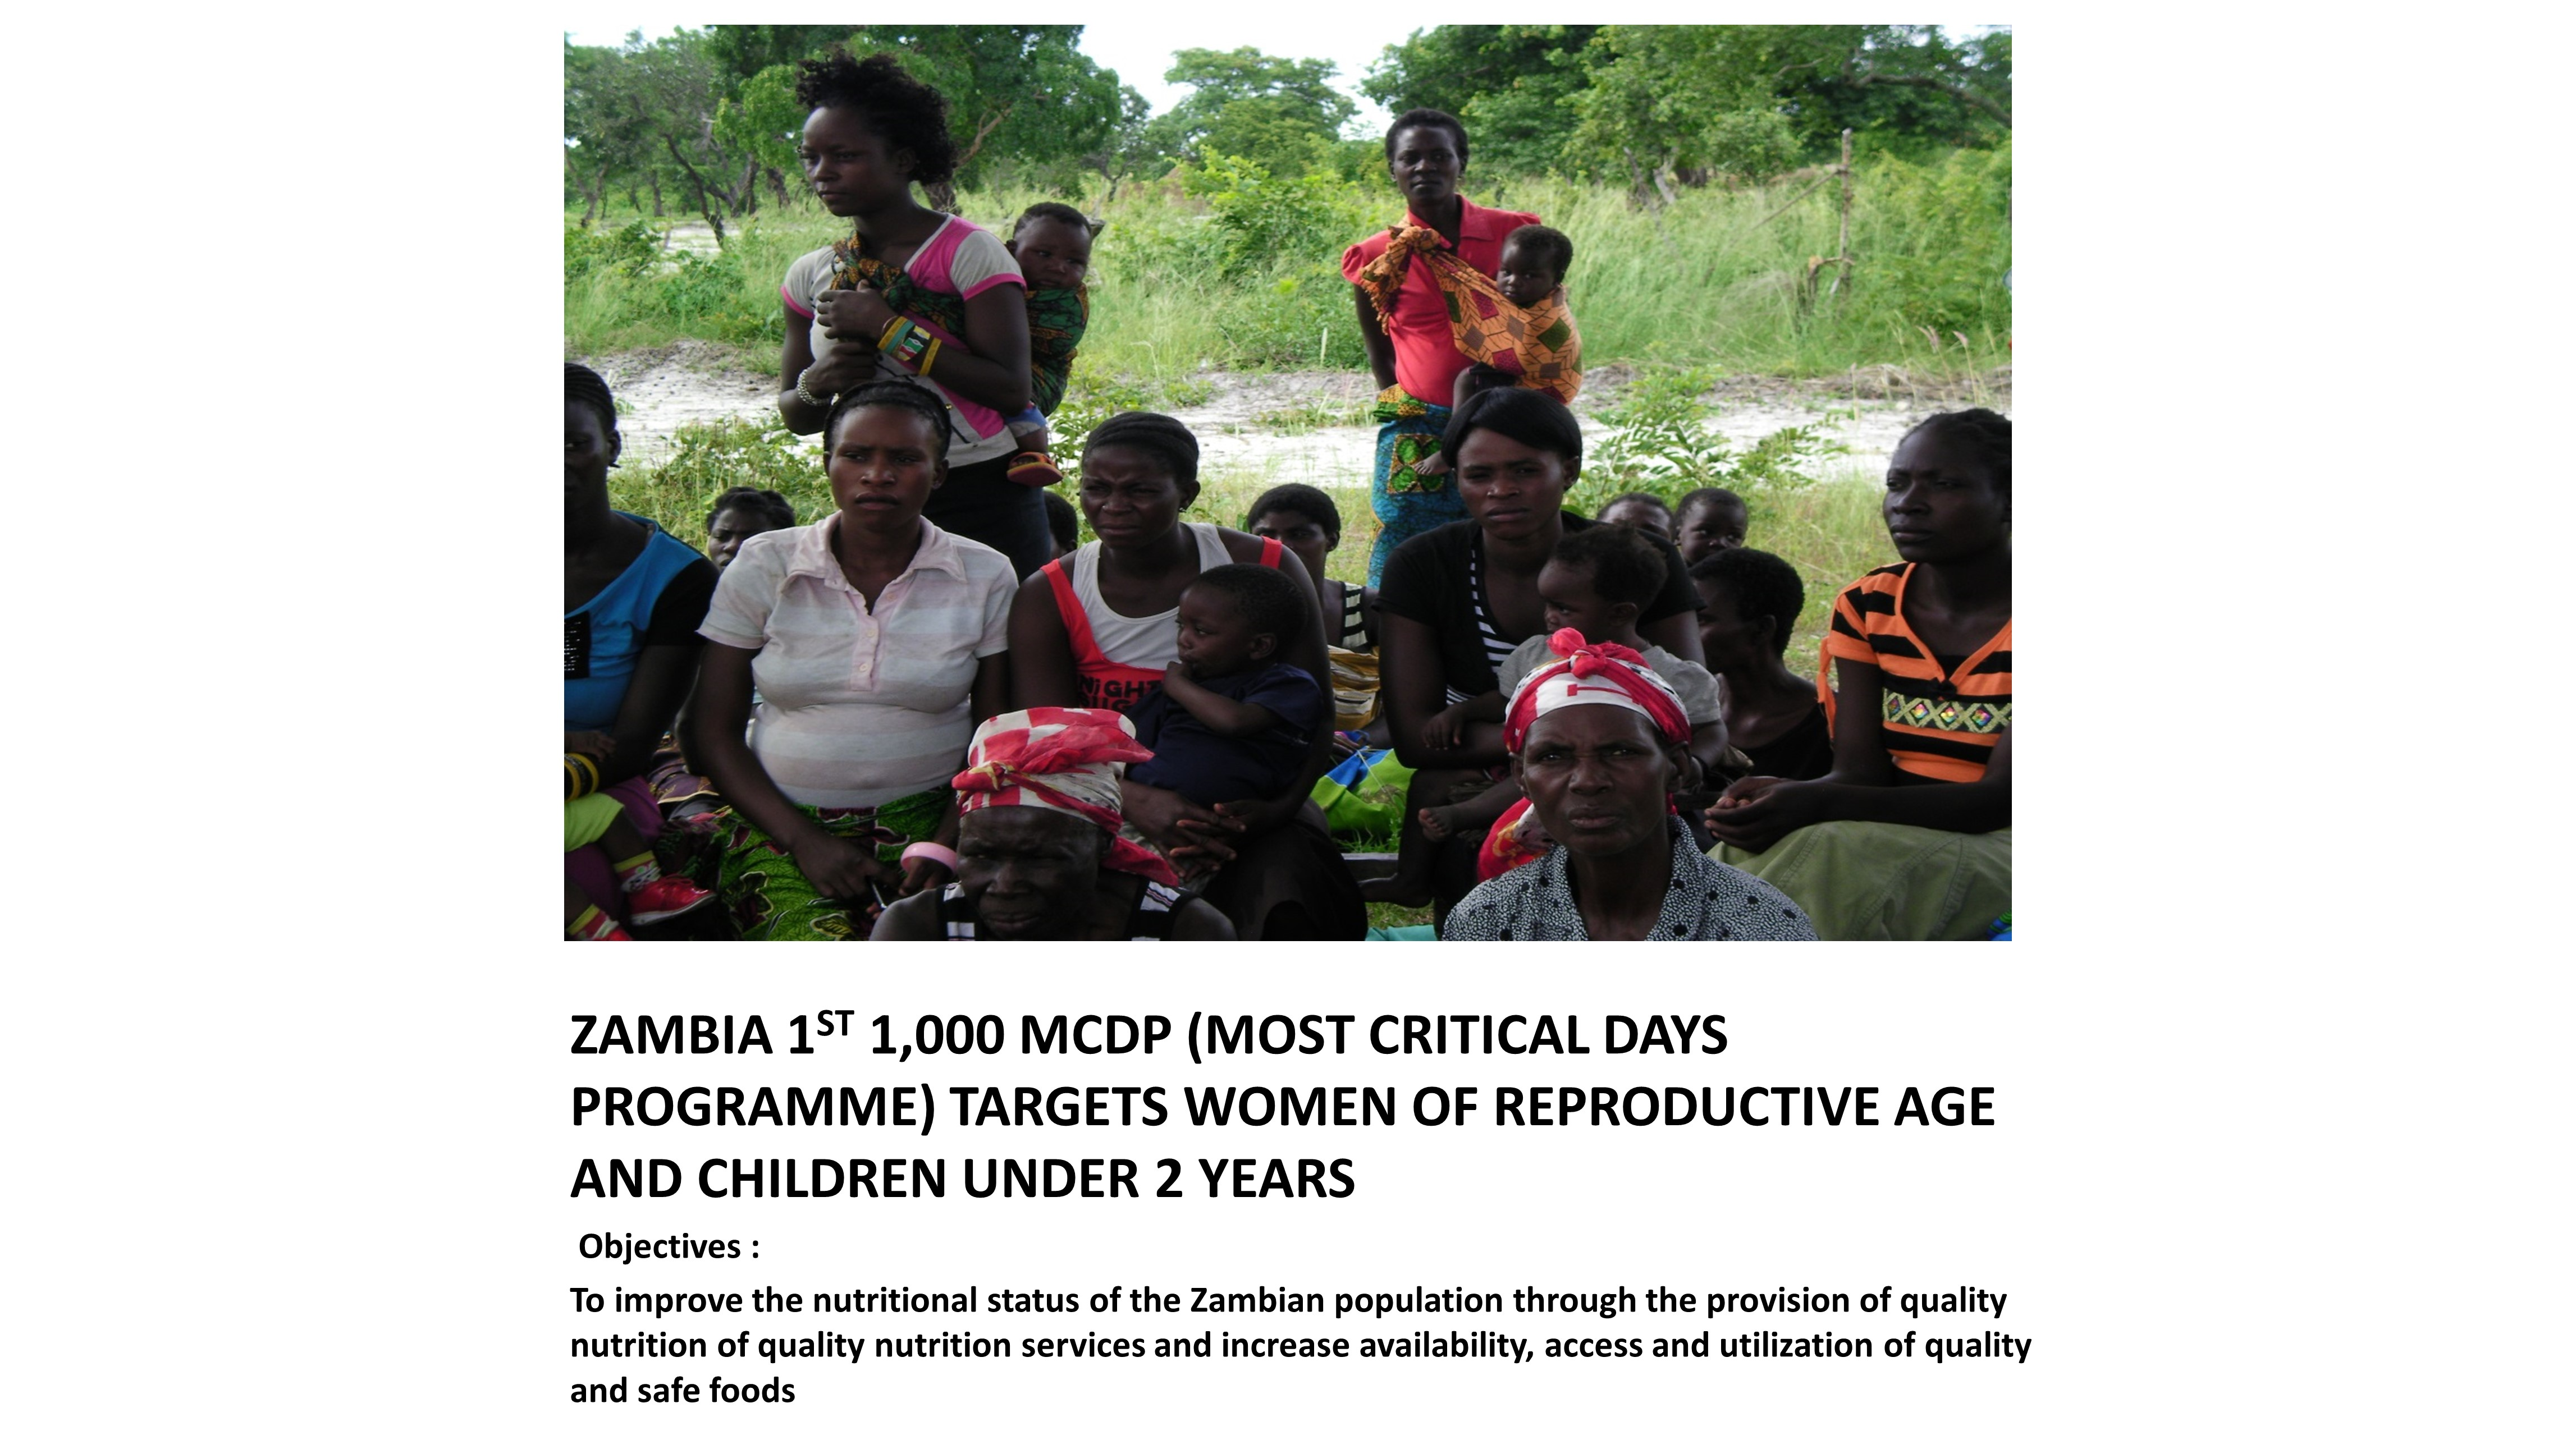 Zambia's First 1,000 MCDP (Most Critical Days Programme)